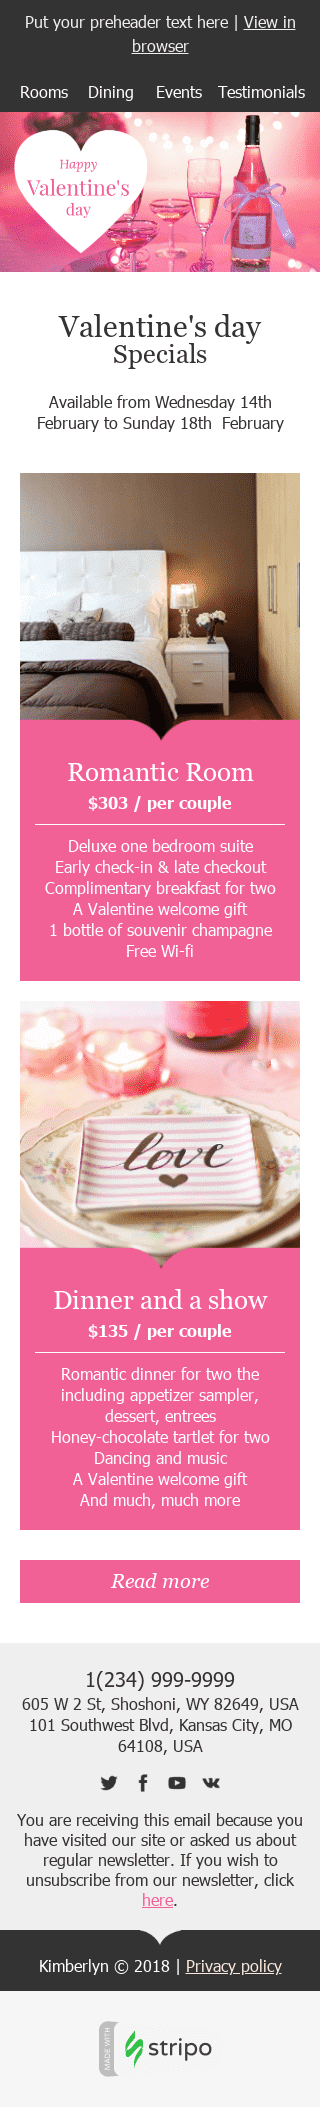 "Valentine's Day Email Template ""Romantic Weekend"" for Hotels industry mobile view"